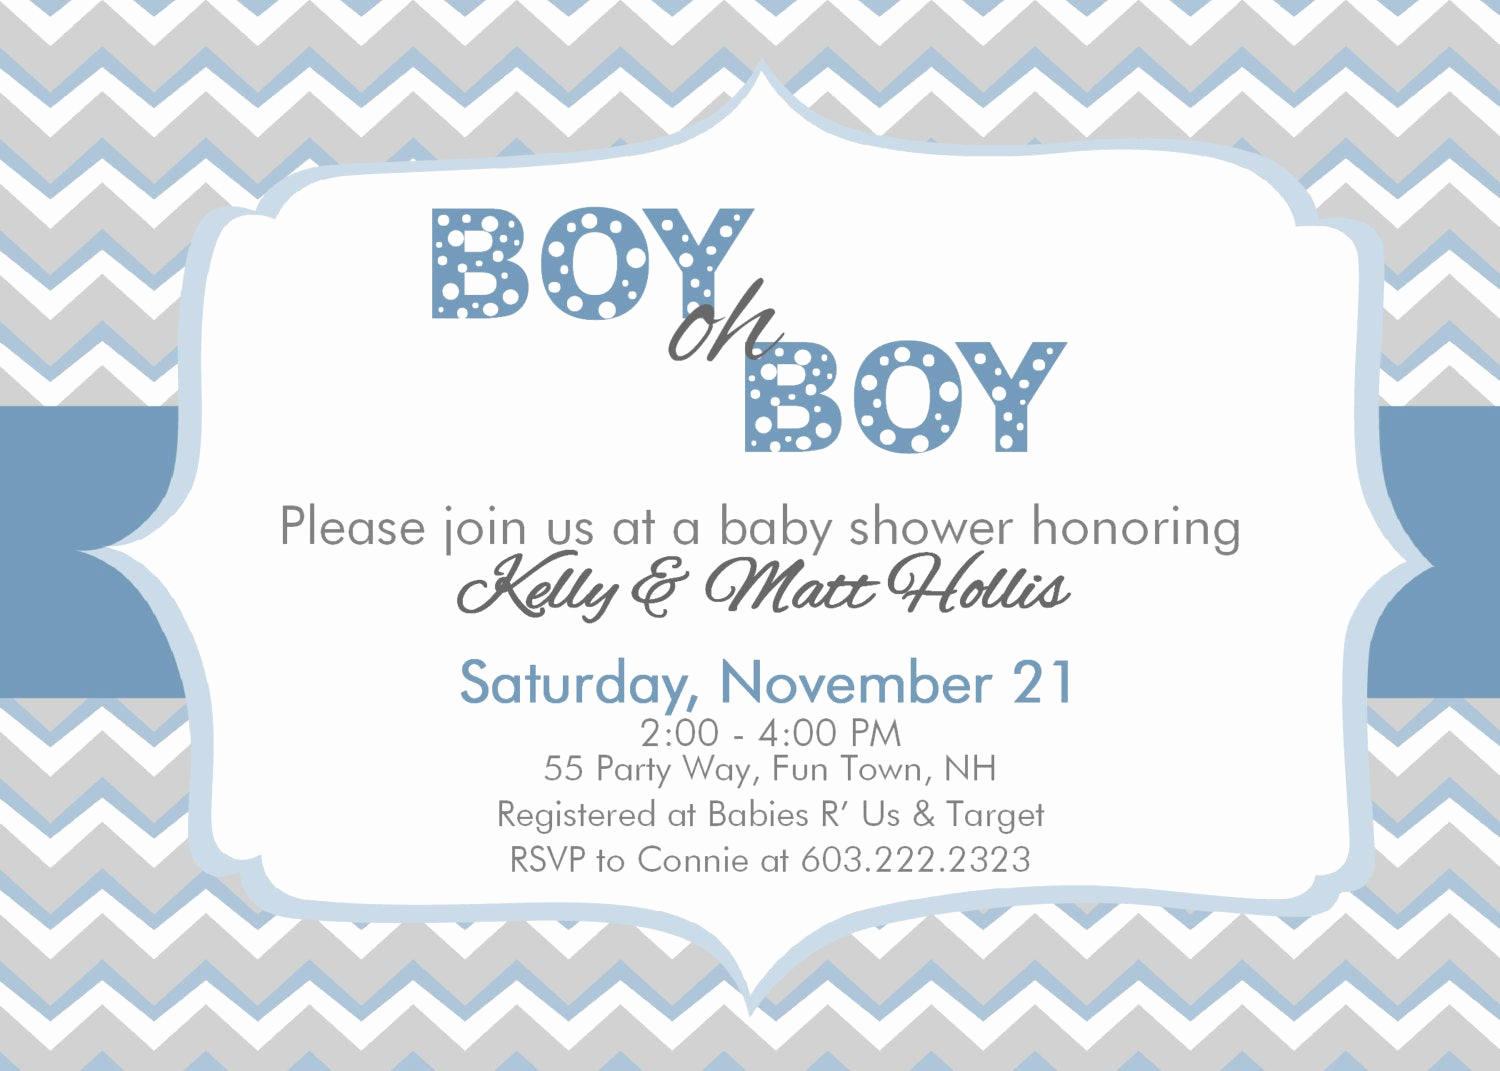 Baby Shower Invitation Pictures Awesome Chevron Baby Shower Invitation Boy Chevron Boy Oh Boy Baby